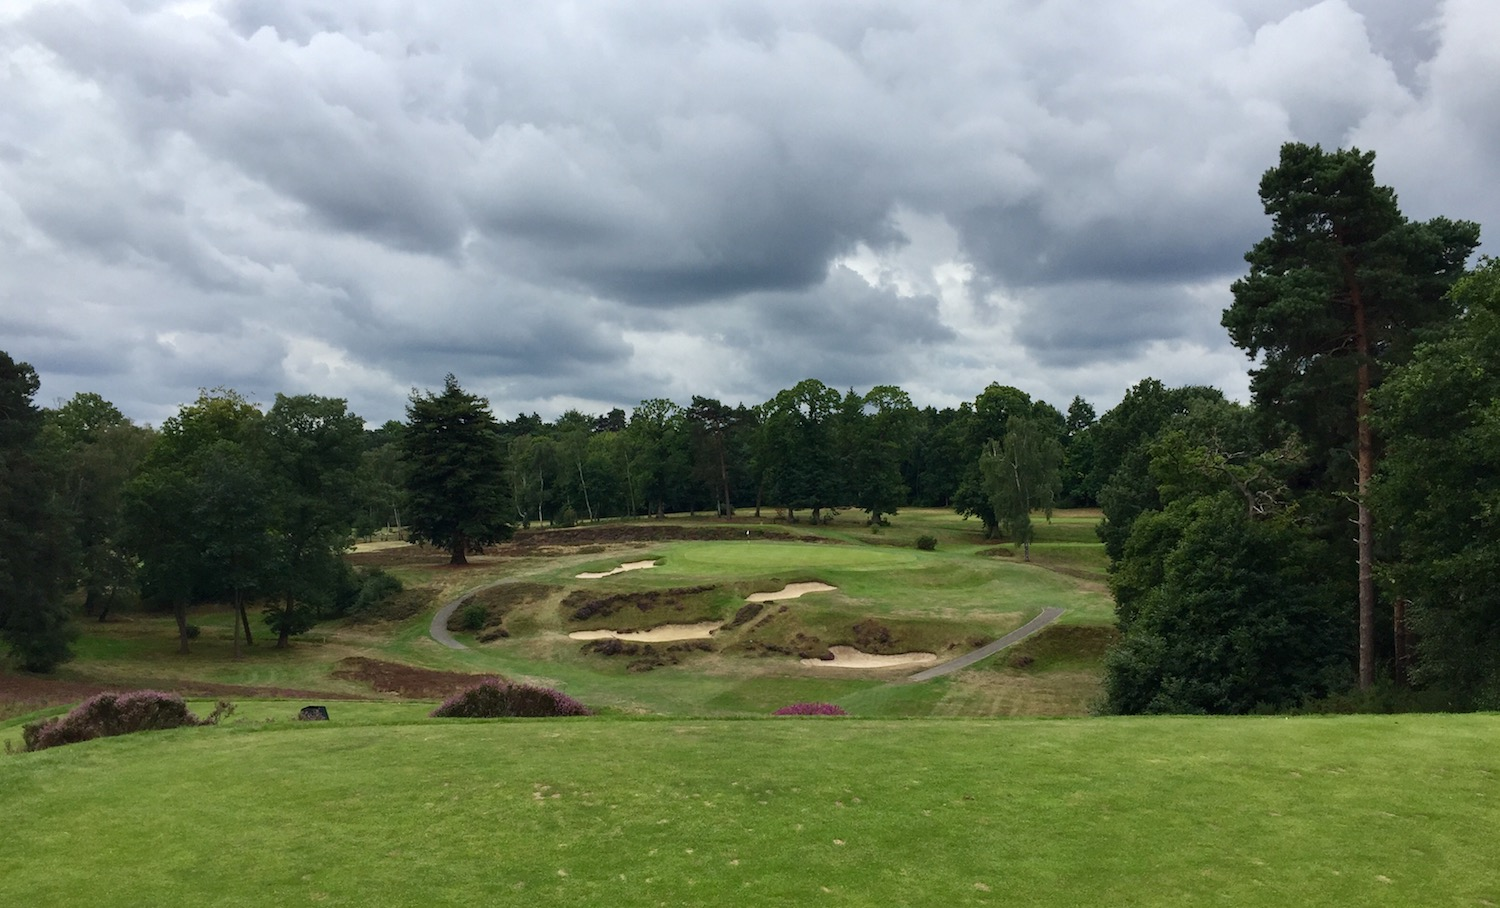 St. George's Hill Golf Club is an absolute must-play Harry Colt design south of London.